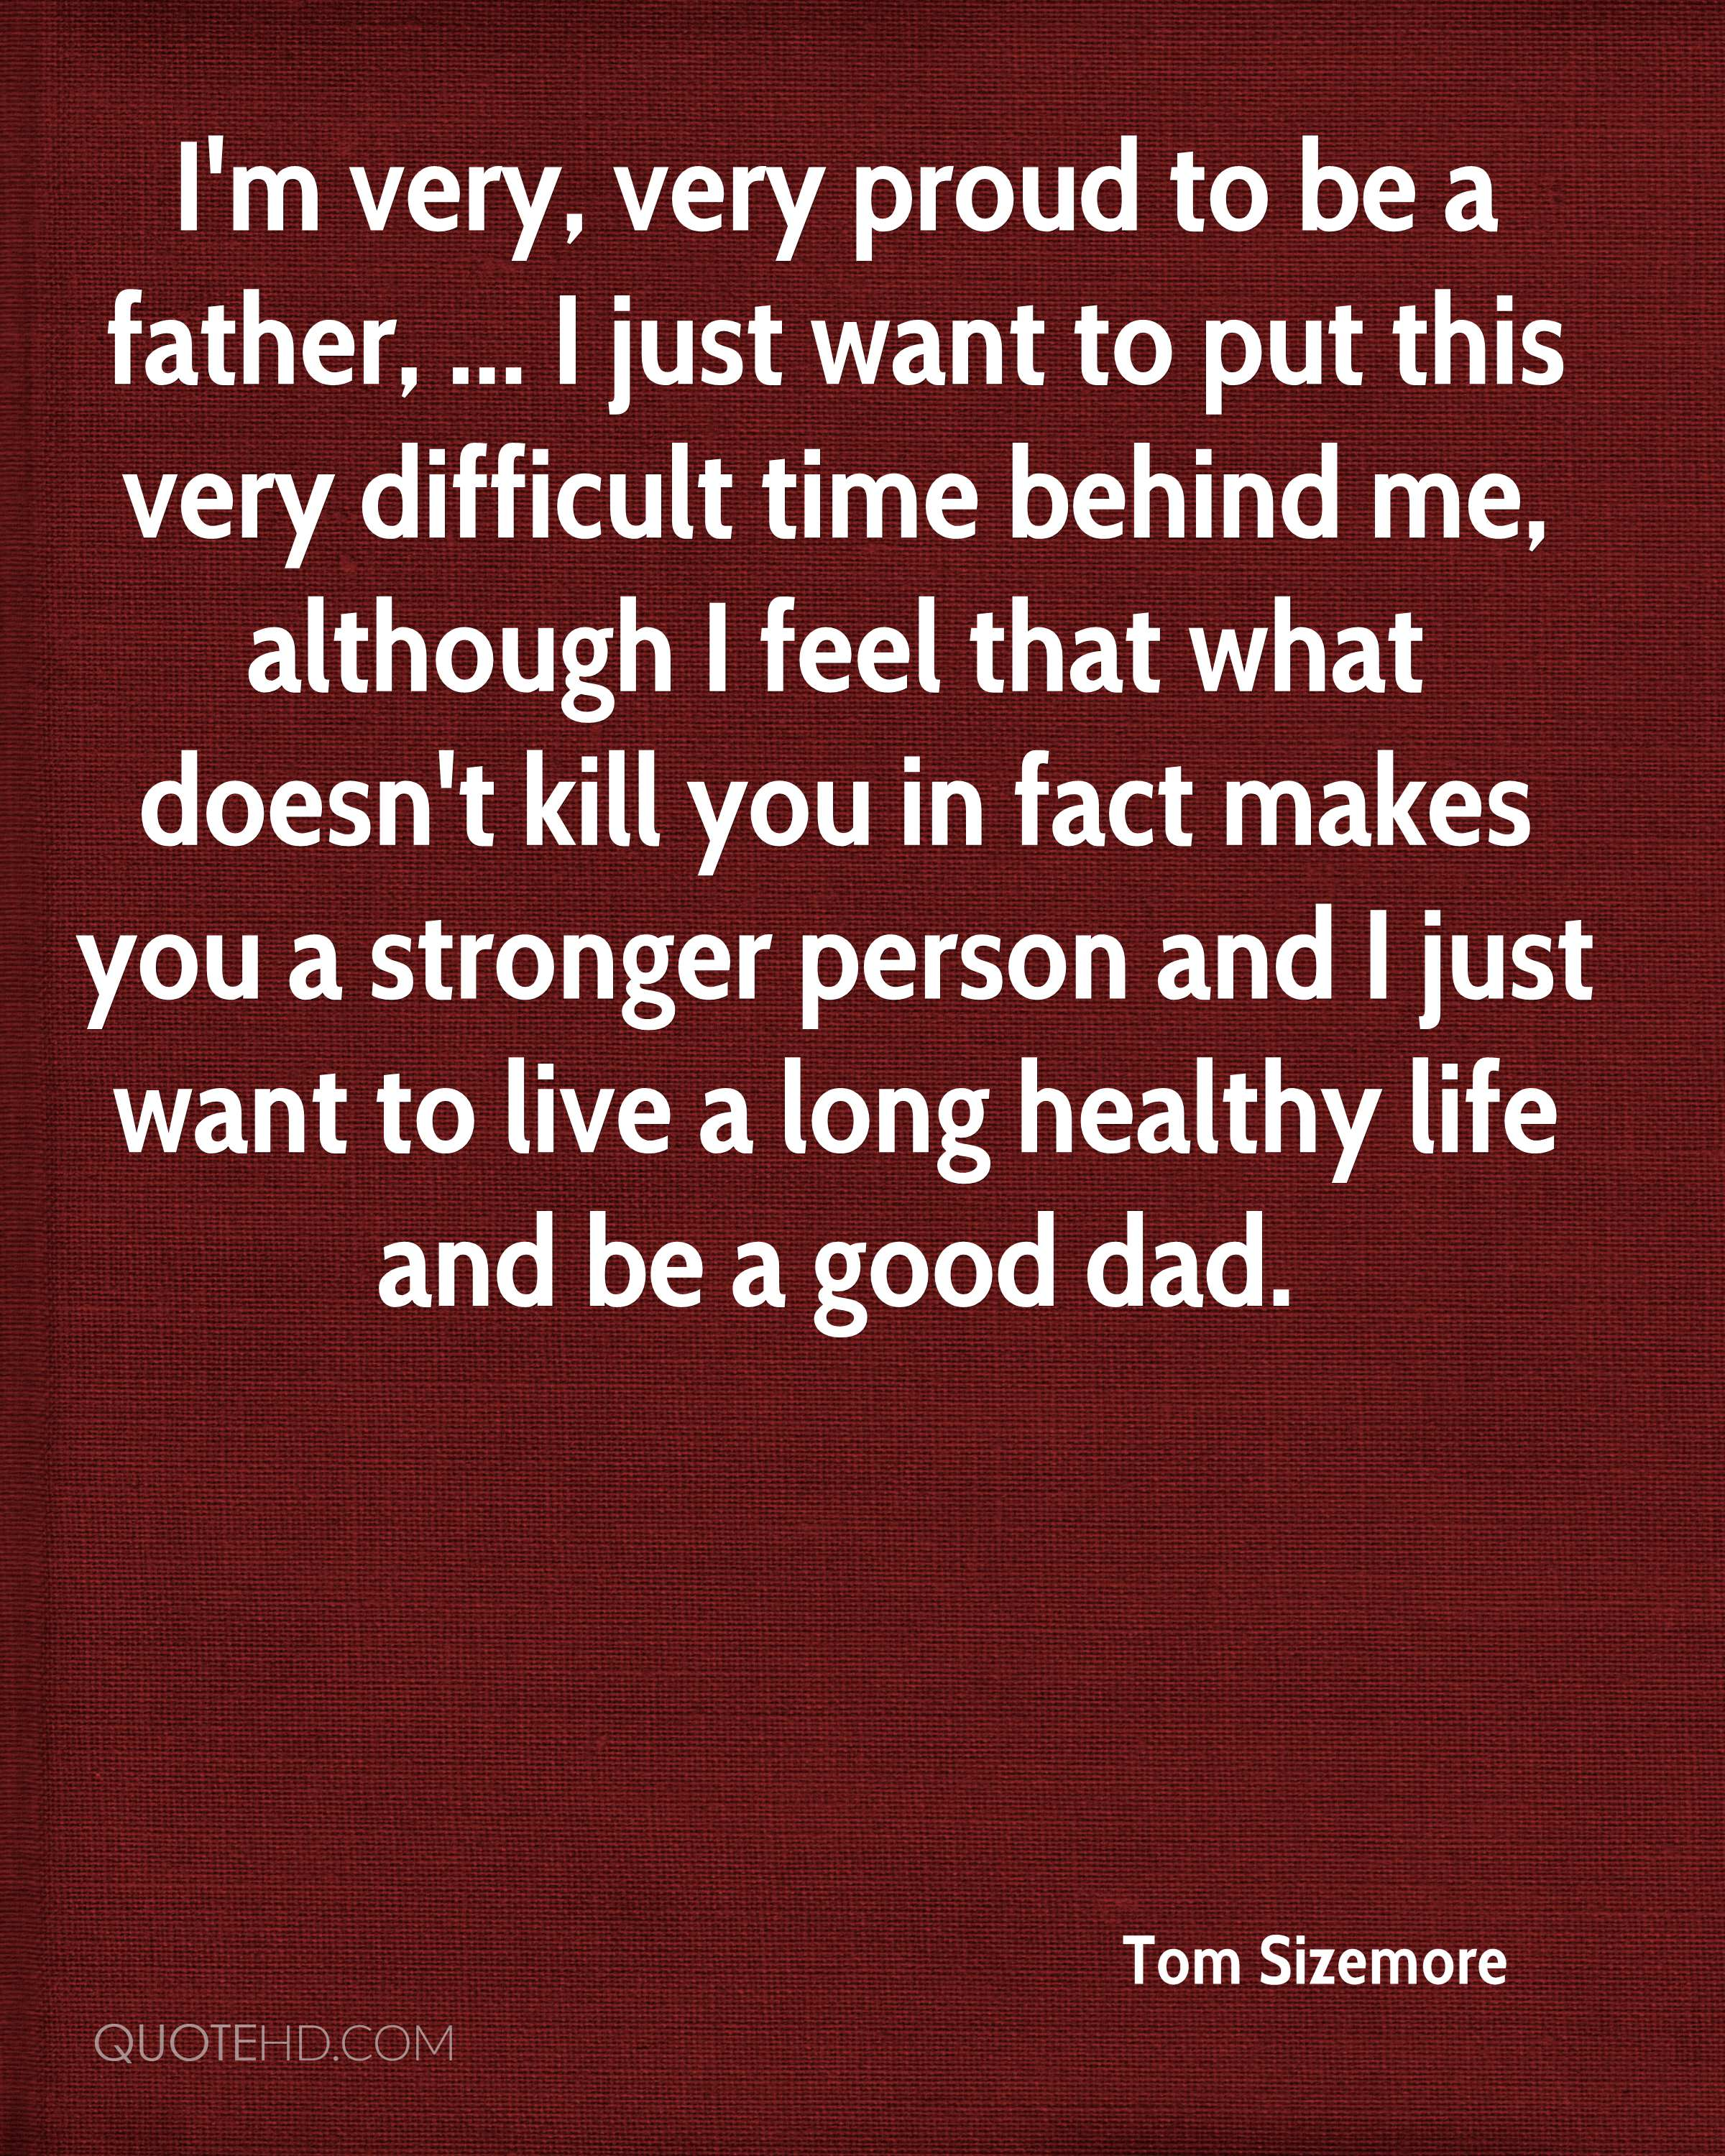 I'm very, very proud to be a father, ... I just want to put this very difficult time behind me, although I feel that what doesn't kill you in fact makes you a stronger person and I just want to live a long healthy life and be a good dad.